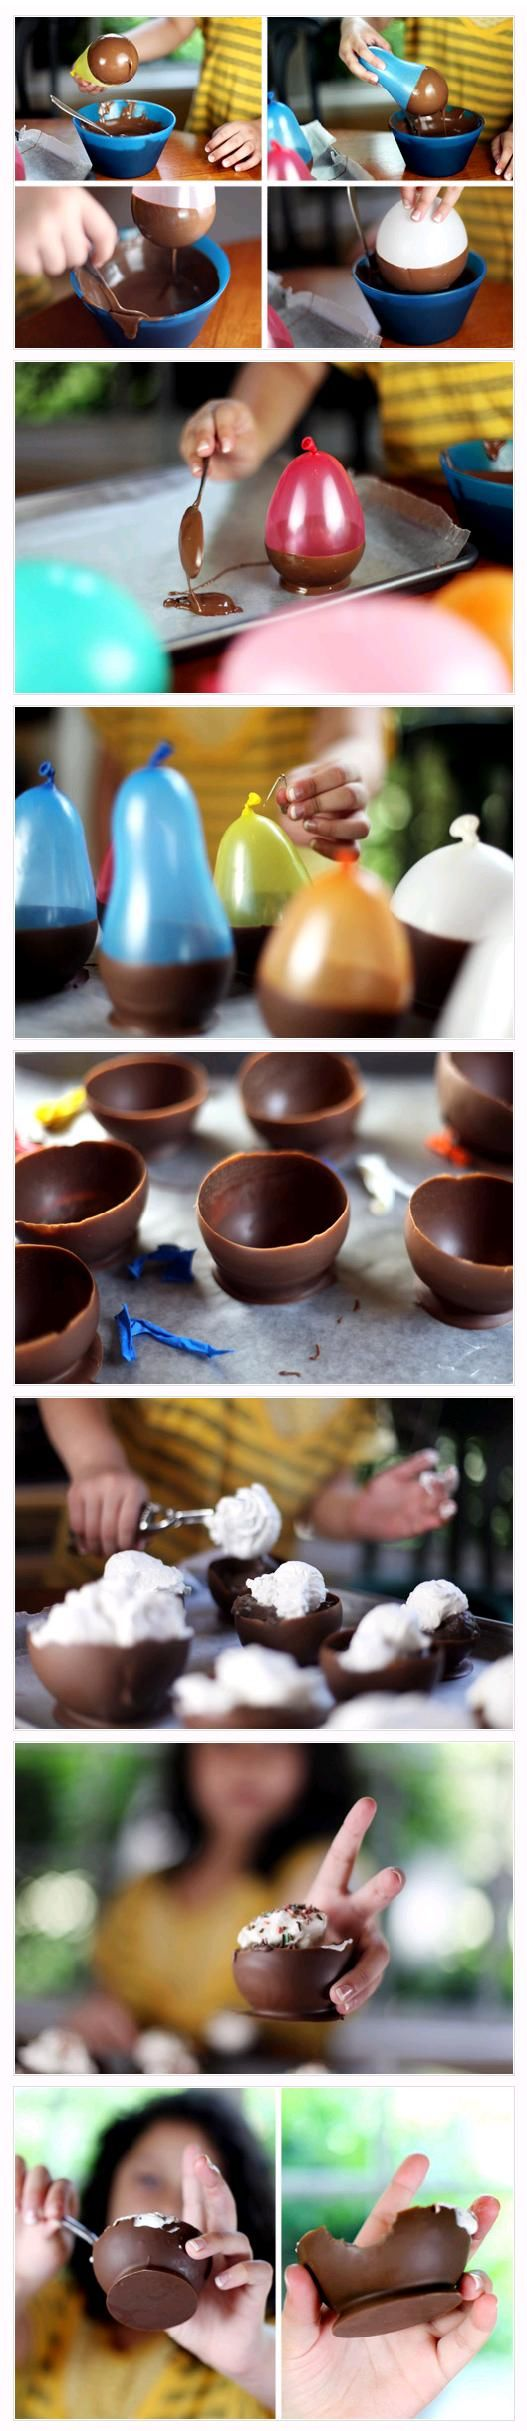 Realiza copitas de chocolate +make chocolate dessert cups!